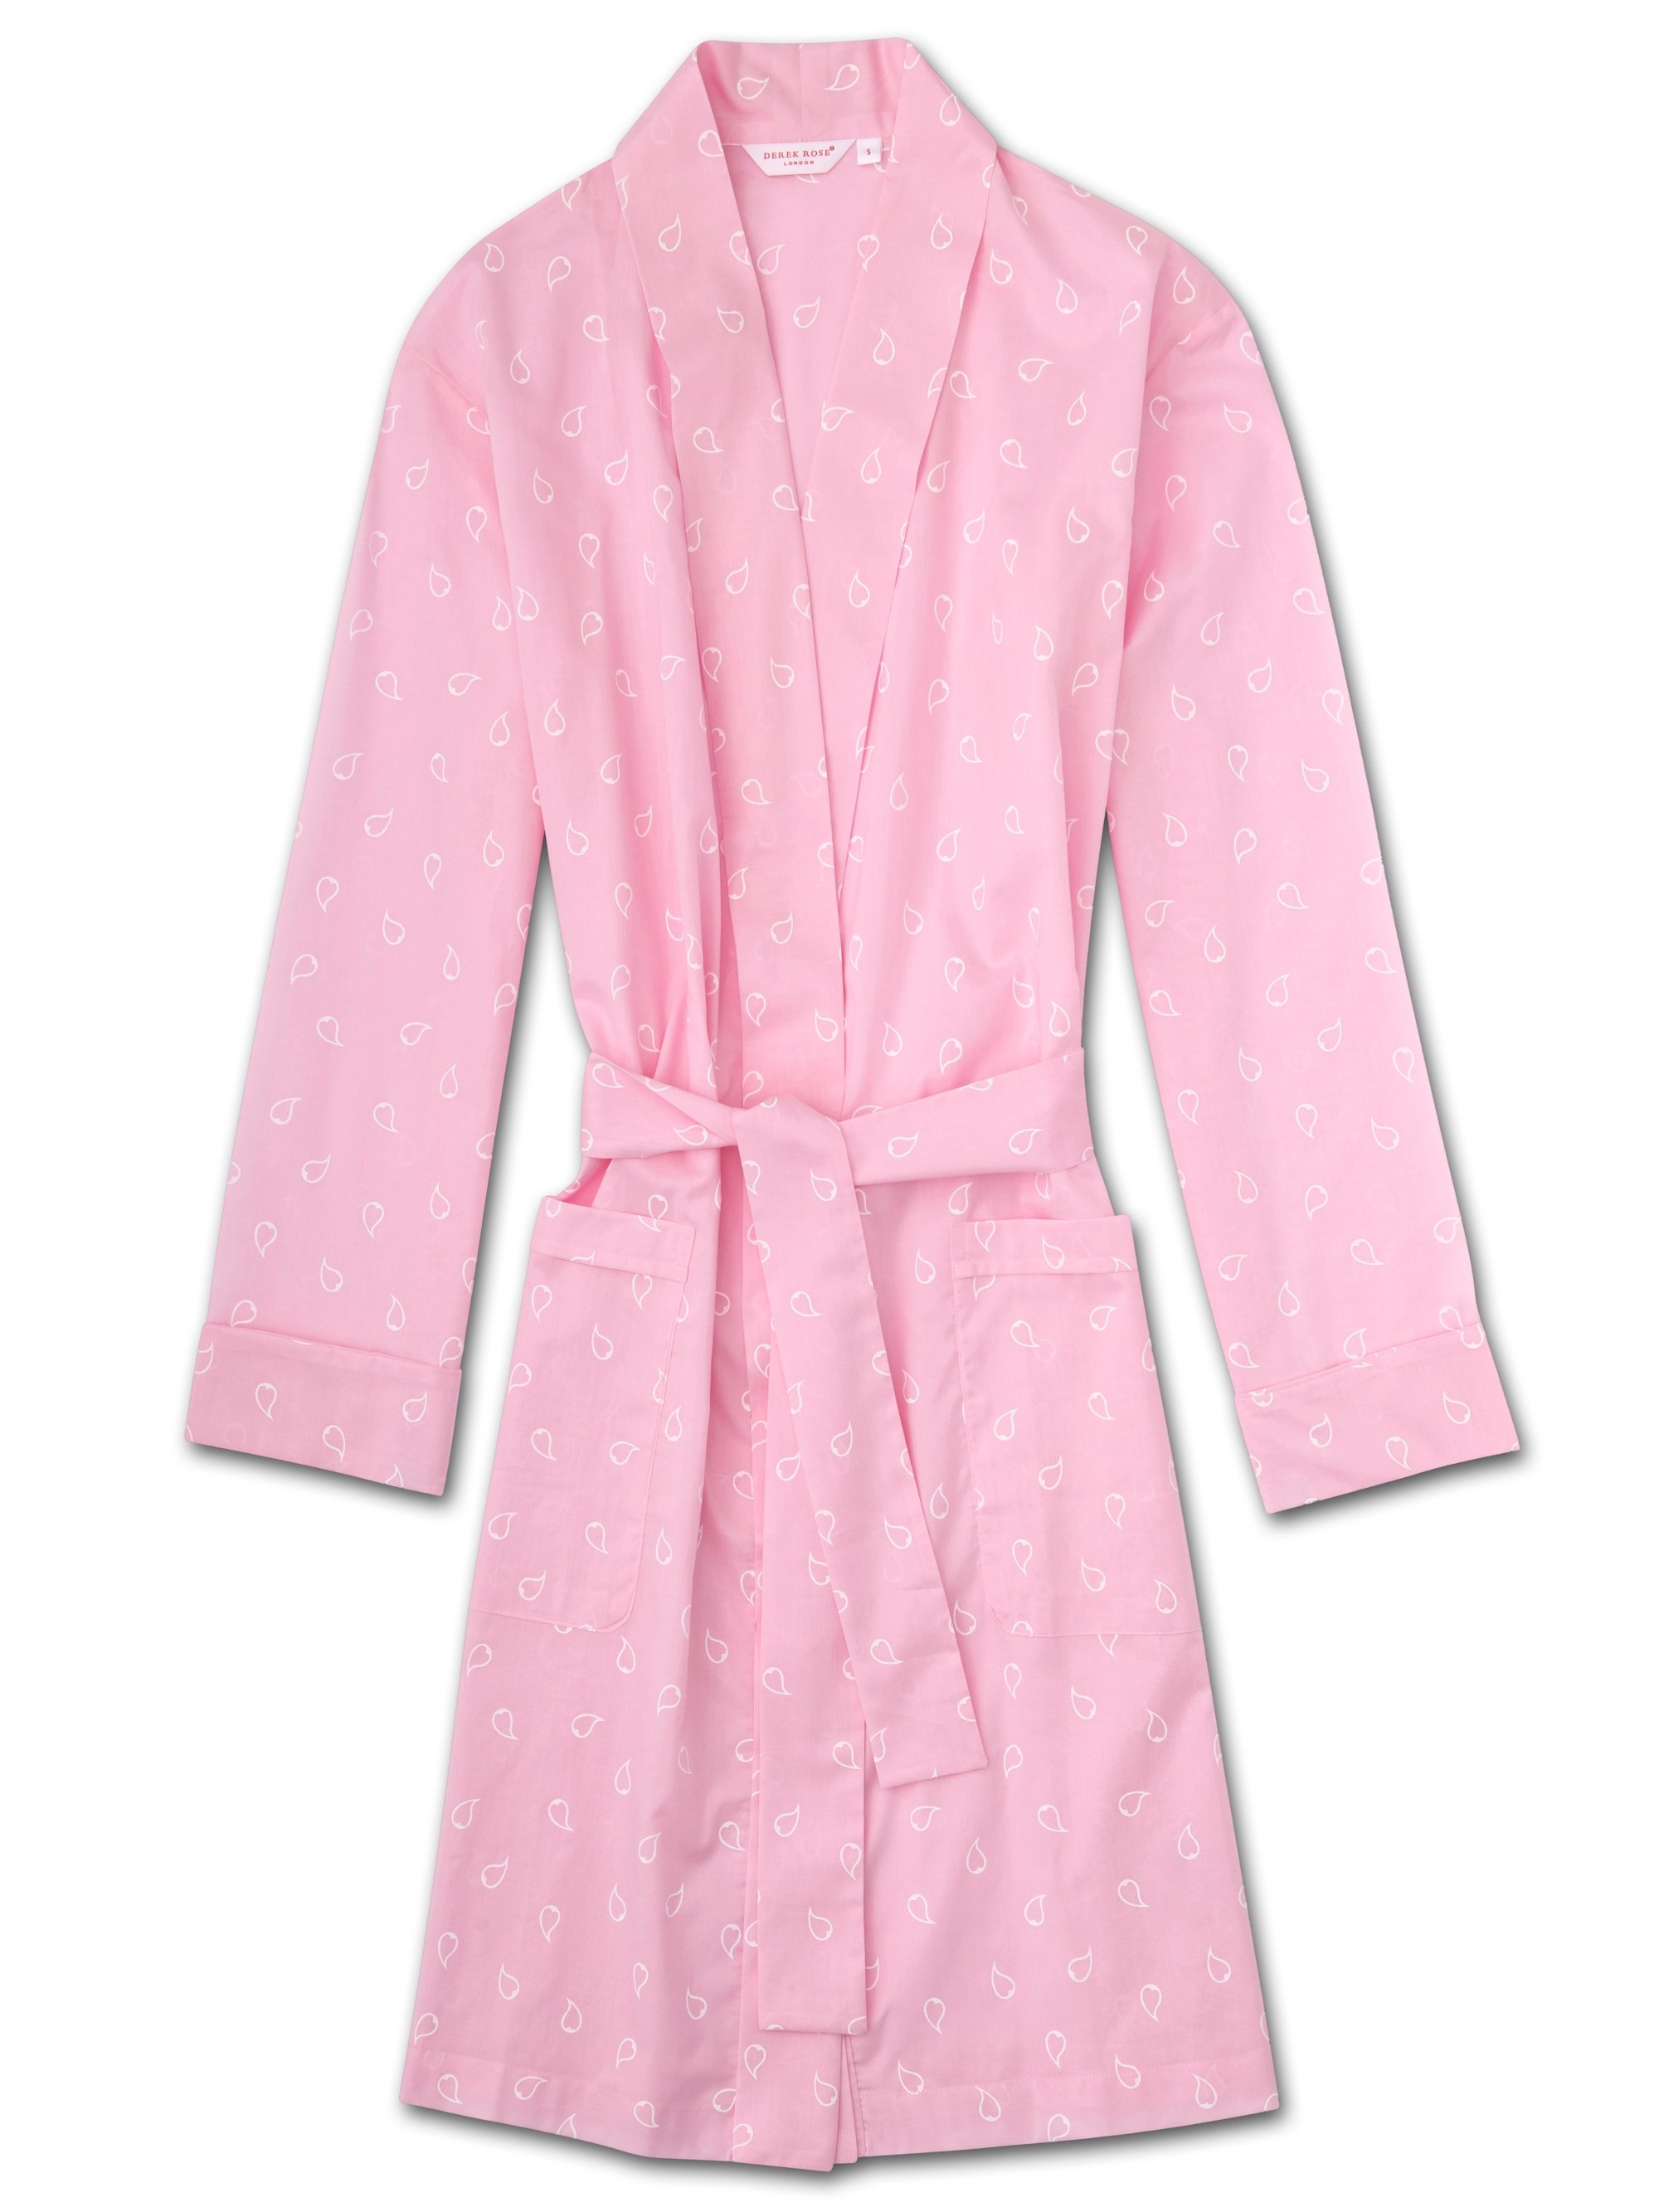 Women's Dressing Gown Nelson 74 Cotton Batiste Pink